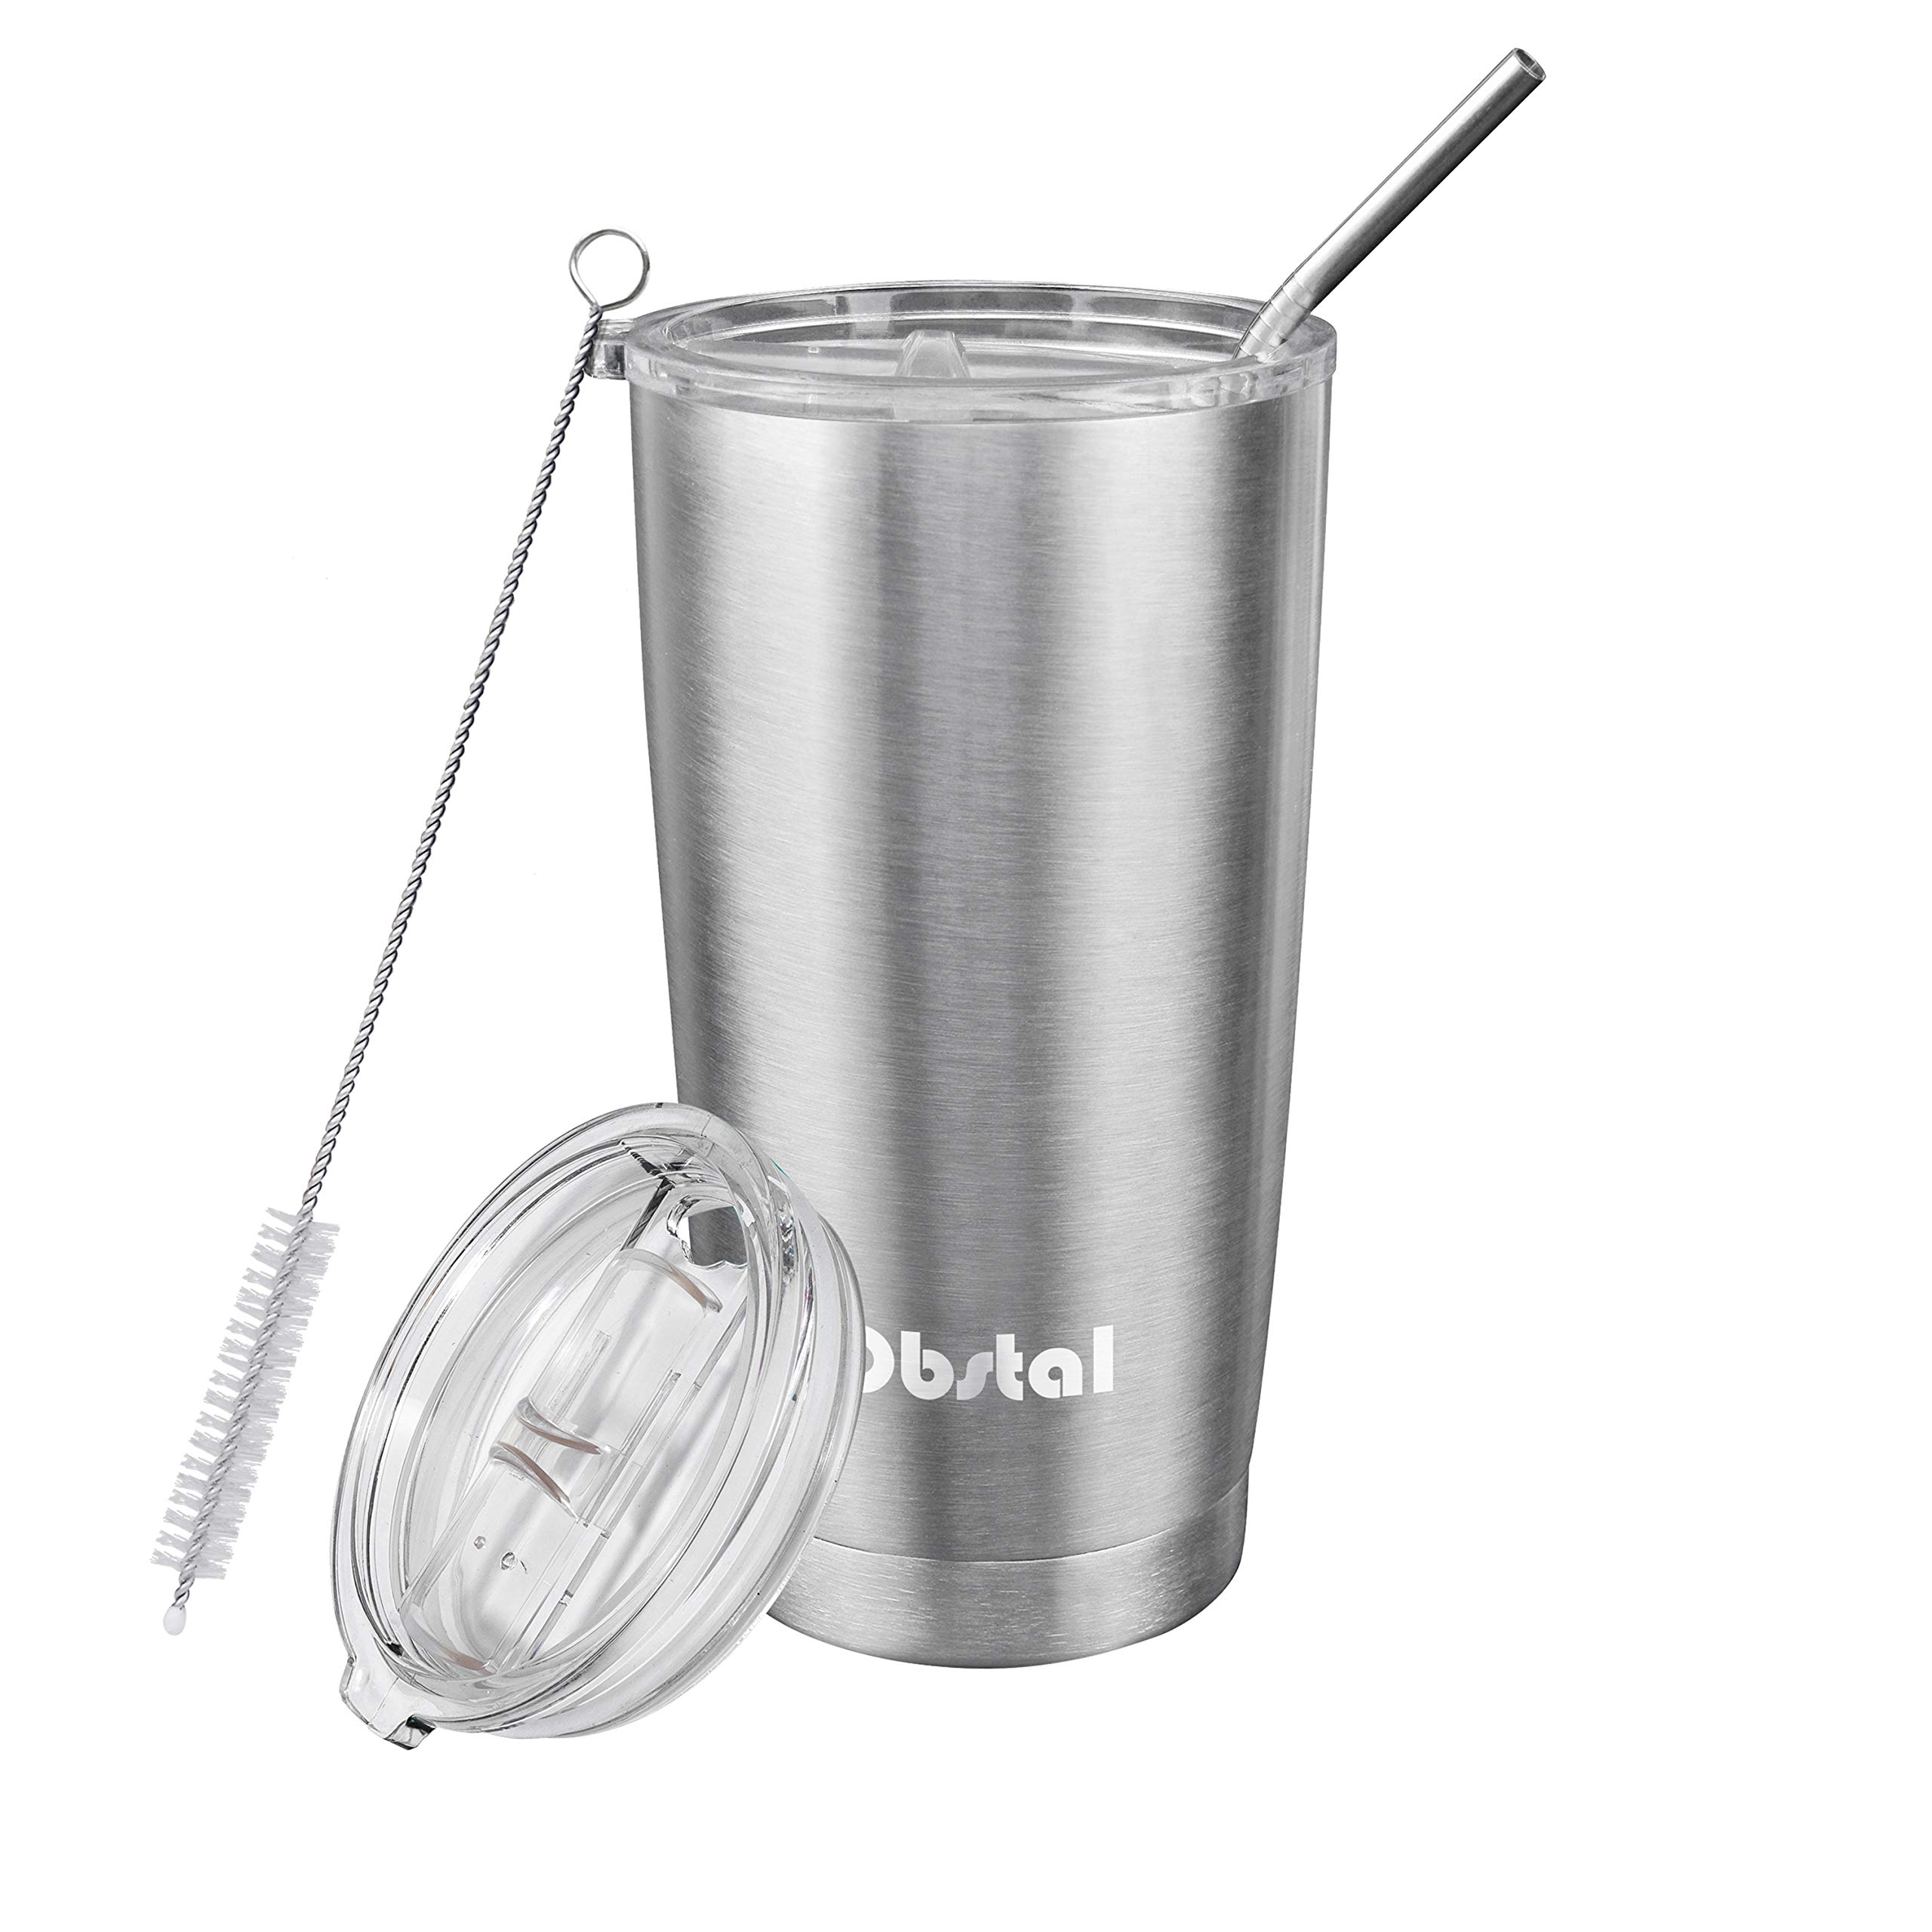 Obstal Insulated Coffee Tumbler Stainless Steel Double Wall Vacuum with Stainless Straw, 2 Clear Lids & Cleaning Brush for Office, Gift (20 oz, Silver)